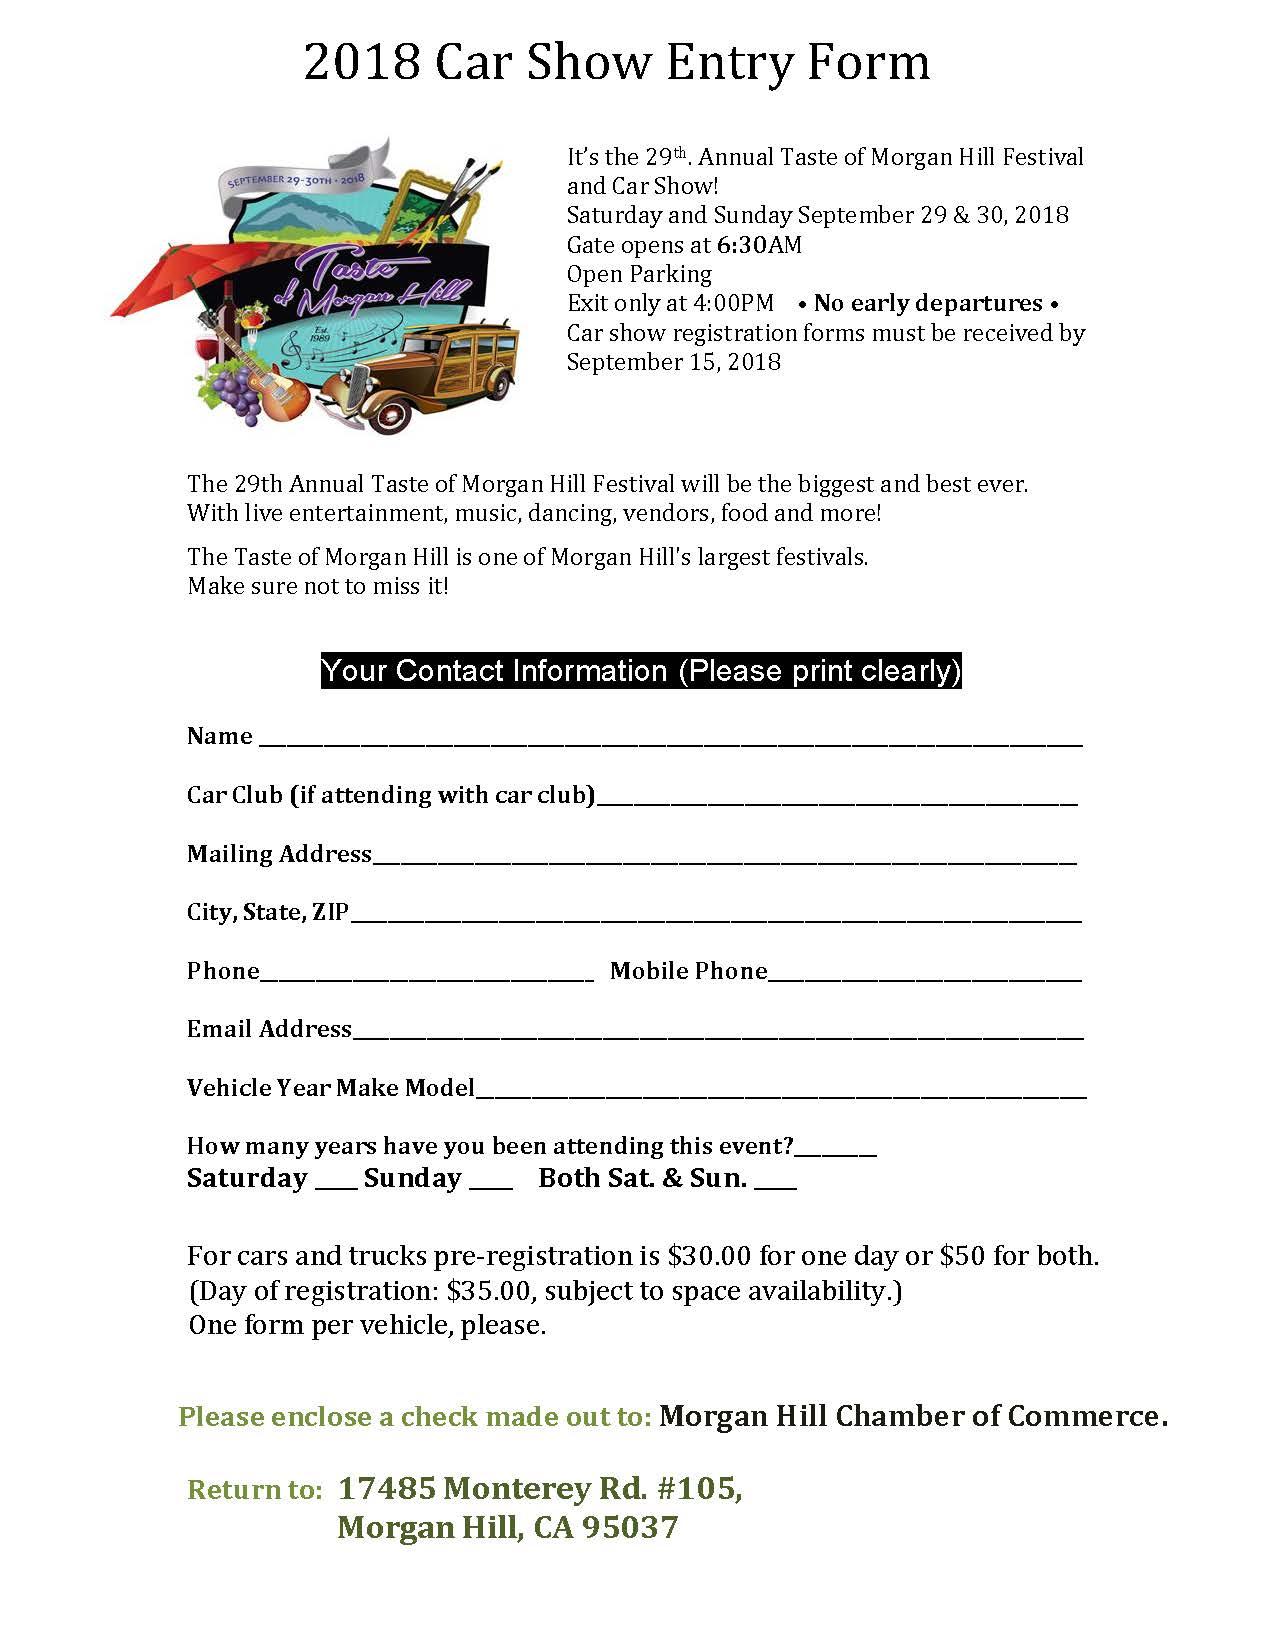 The 29th Annual Taste Car Show Entry Form